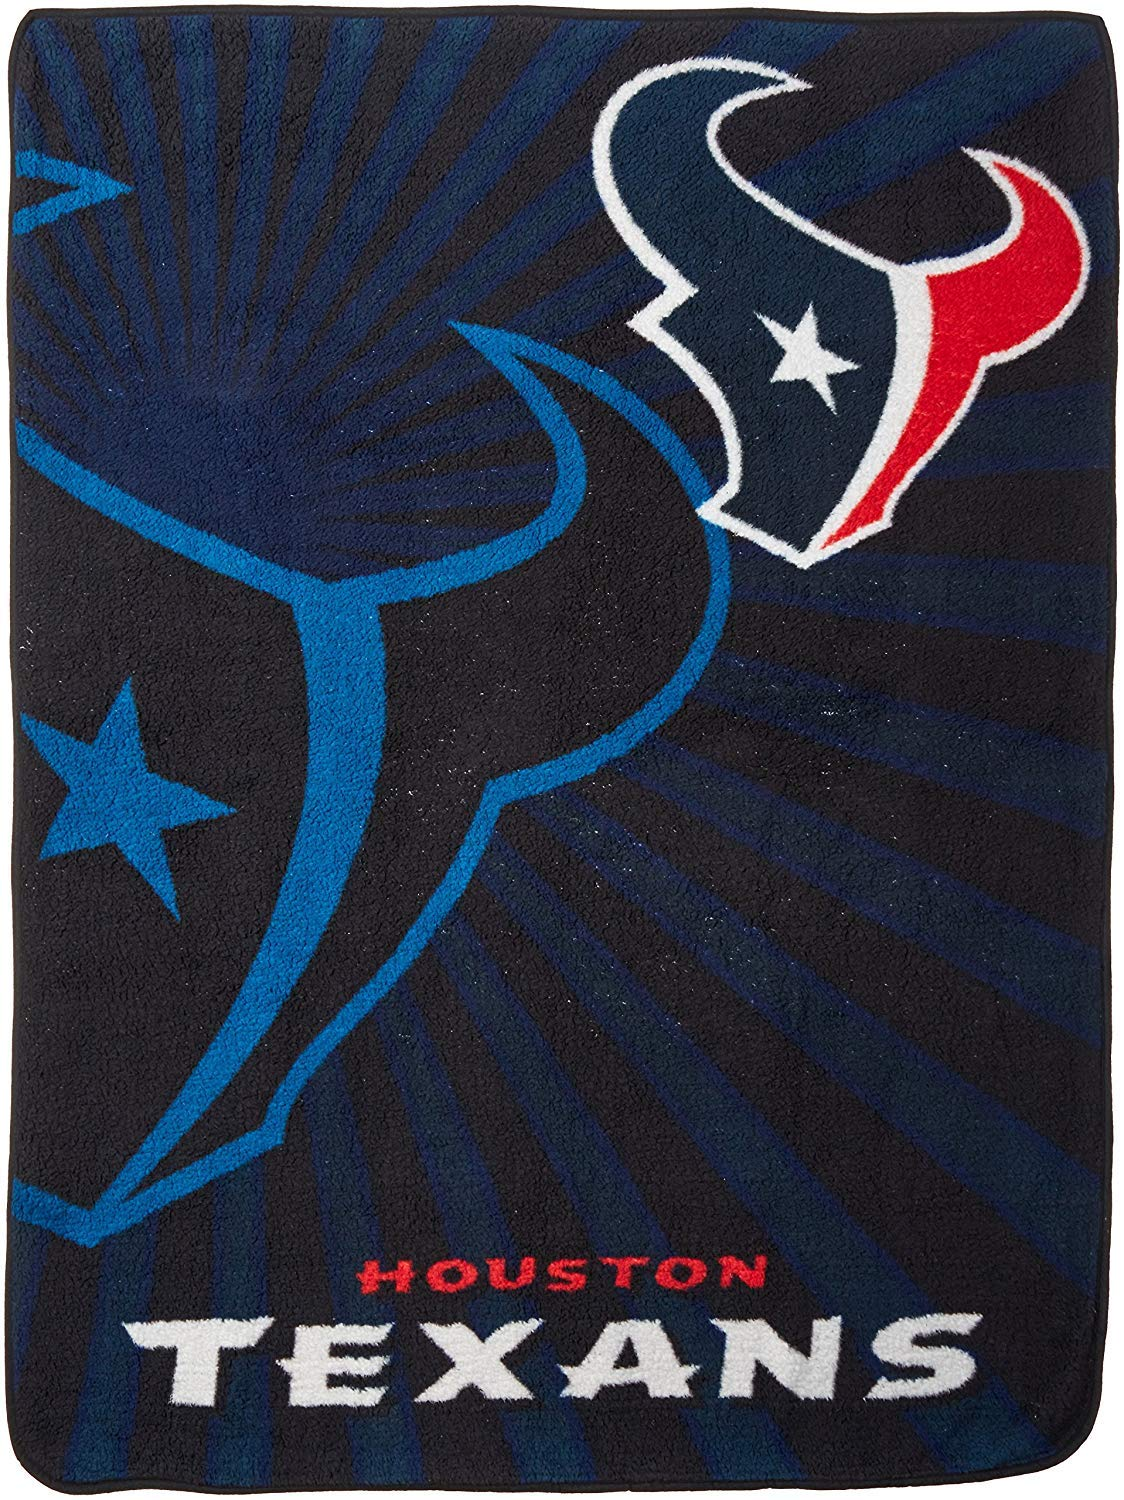 Officially Licensed NFL Strobe Sherpa on Sherpa Throw Blanket Multi Color 50 x 60